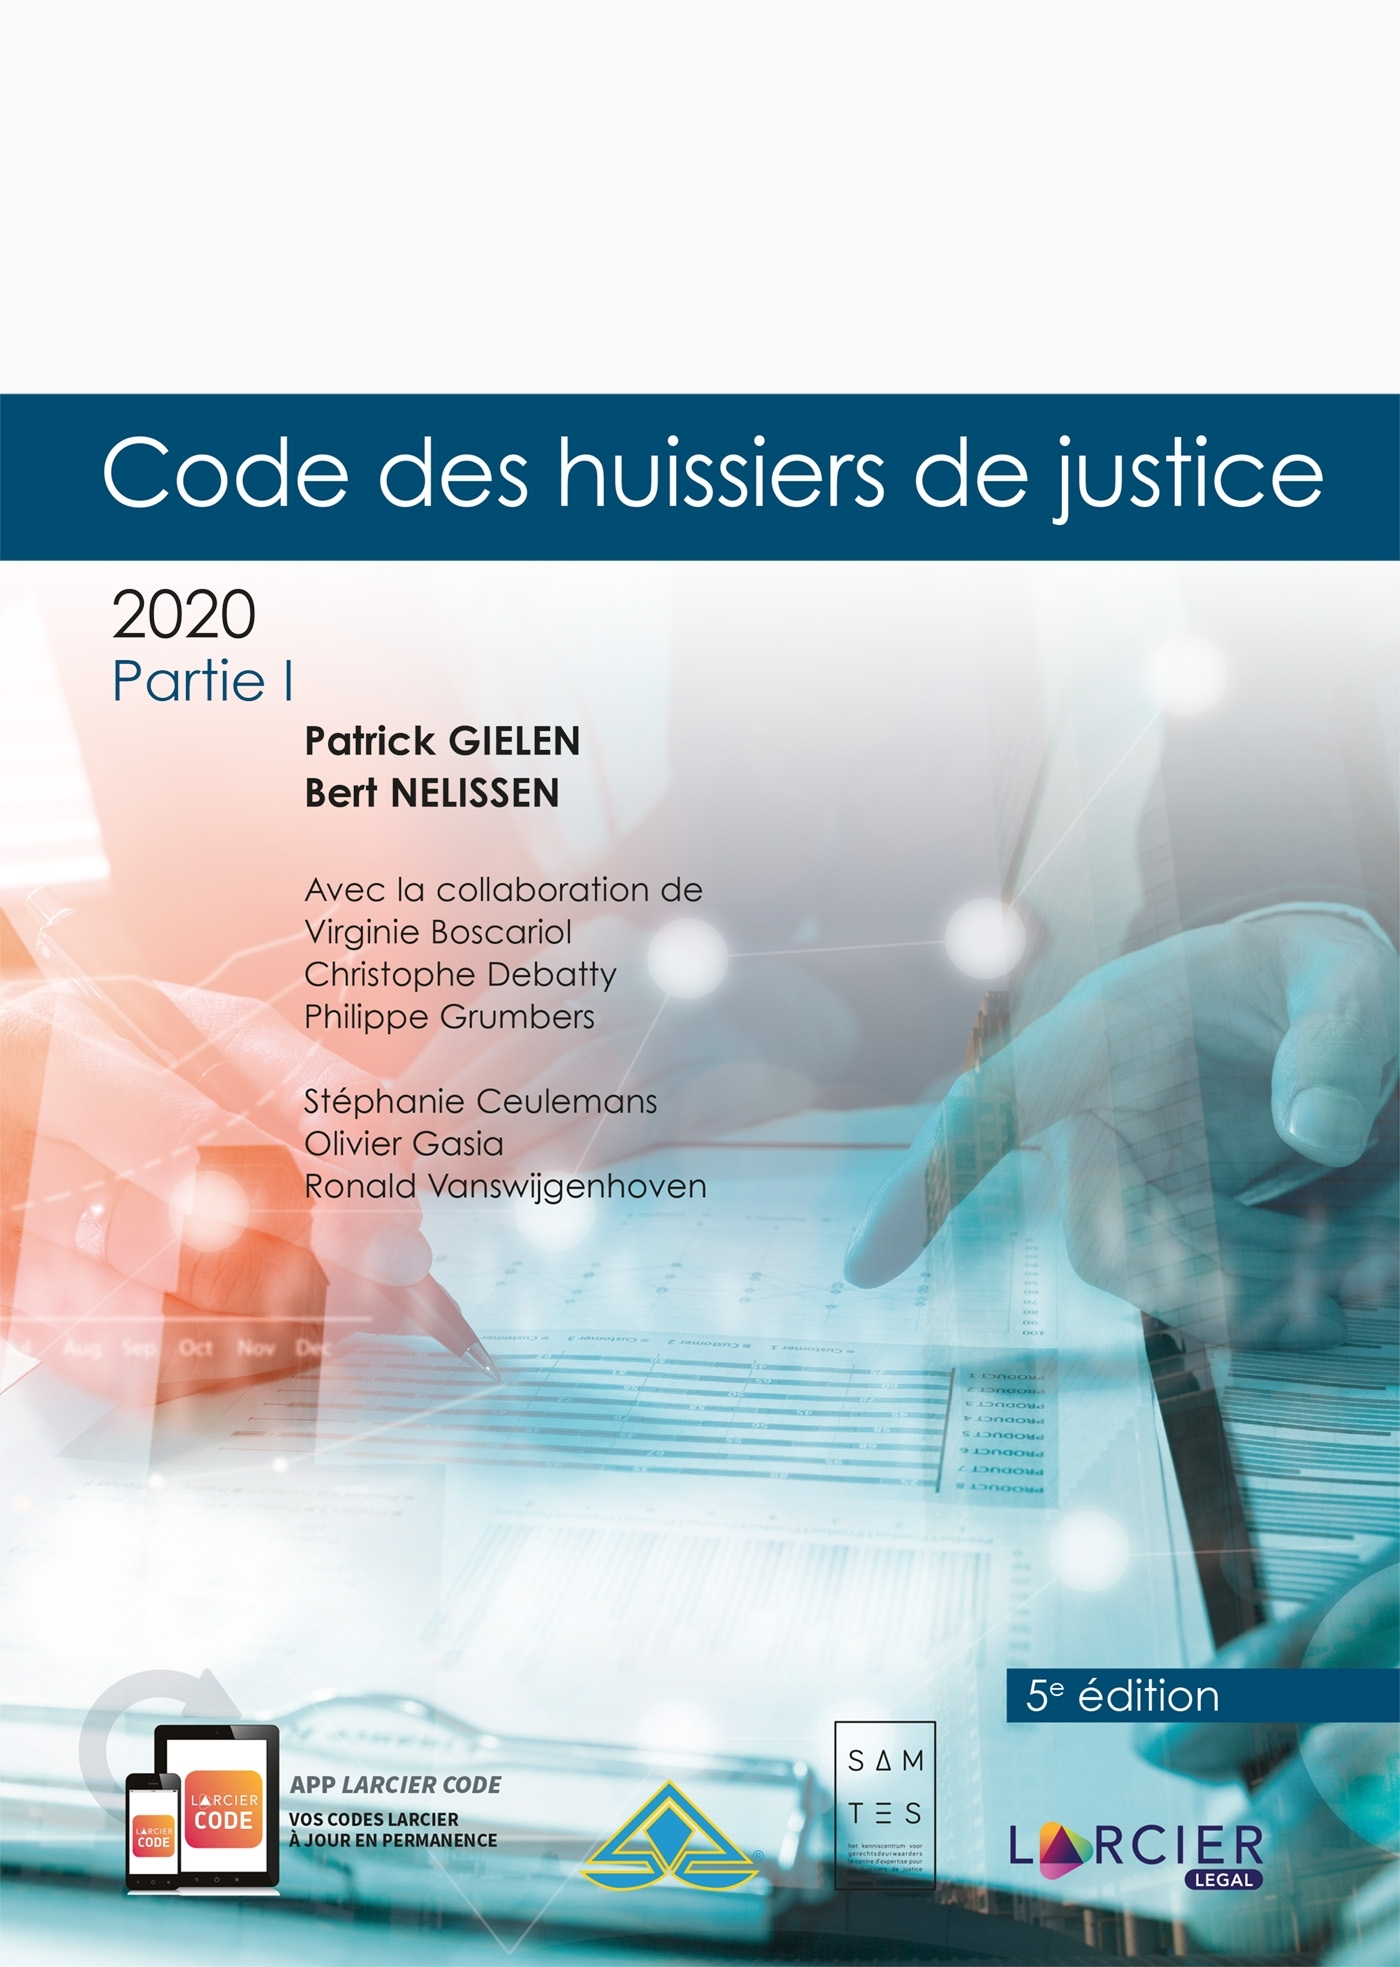 CODE ANNOTE - HUISSIERS DE JUSTICE